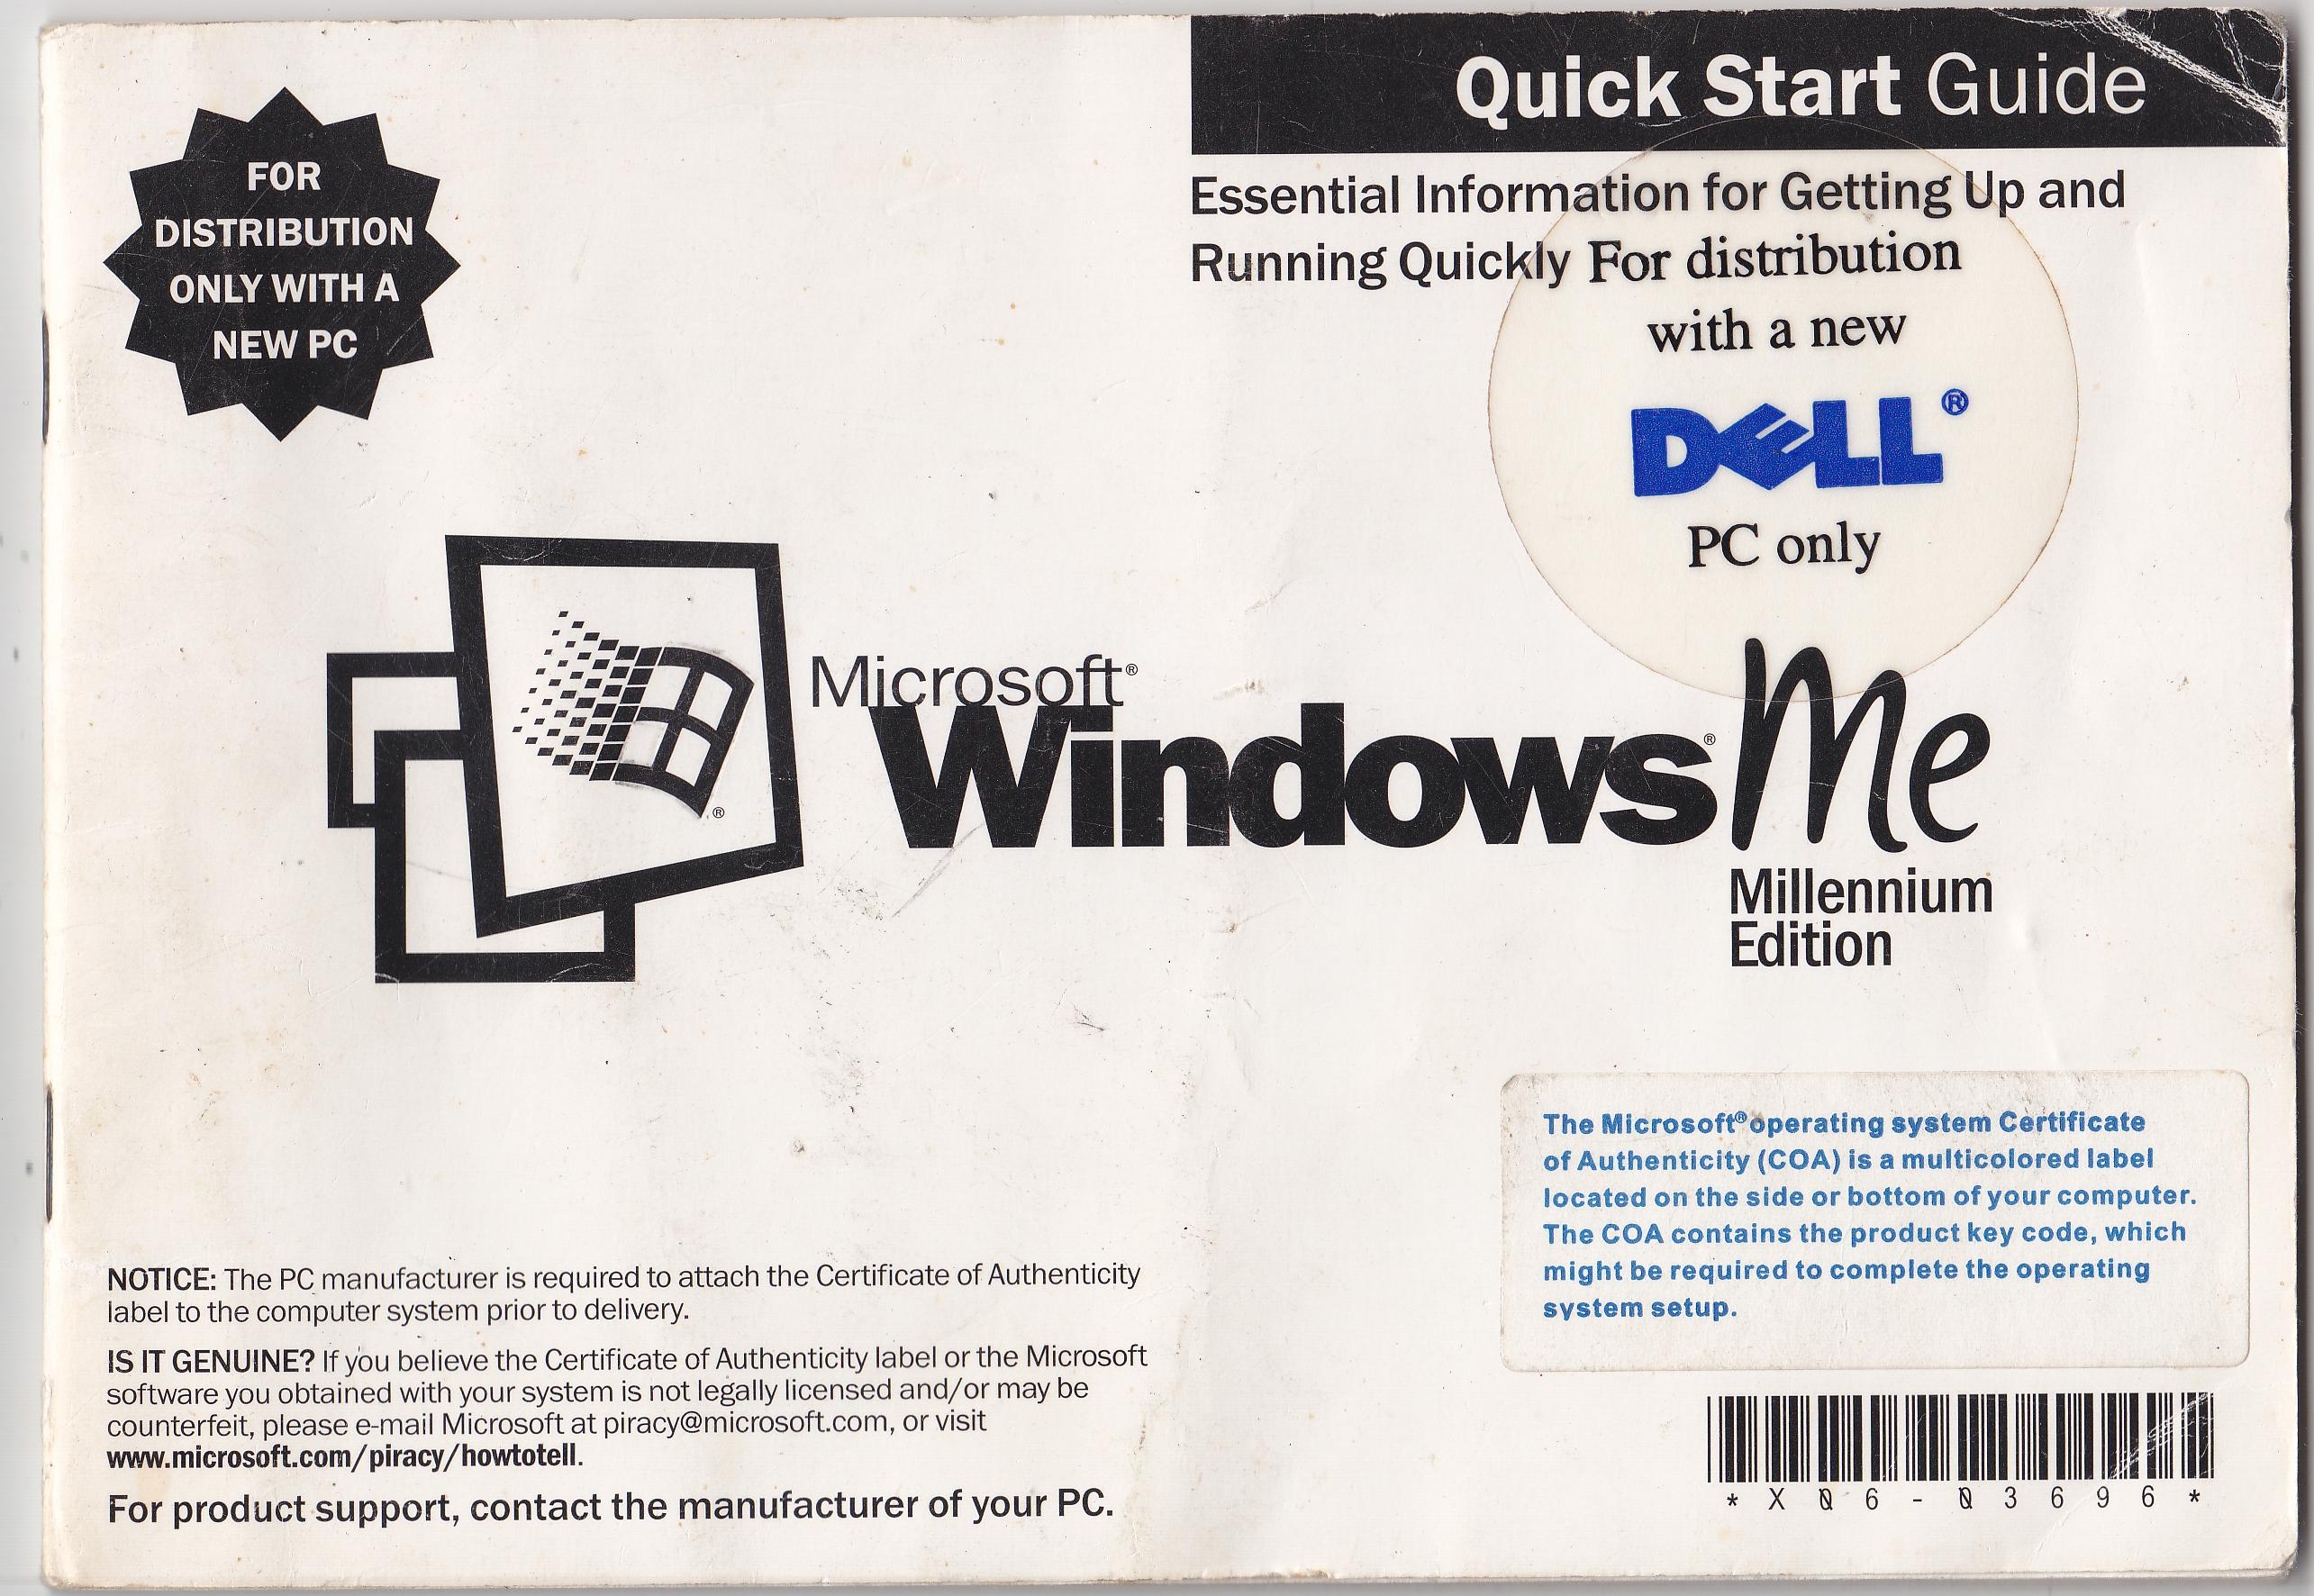 View topic - Screenshots of Microsoft software package scans